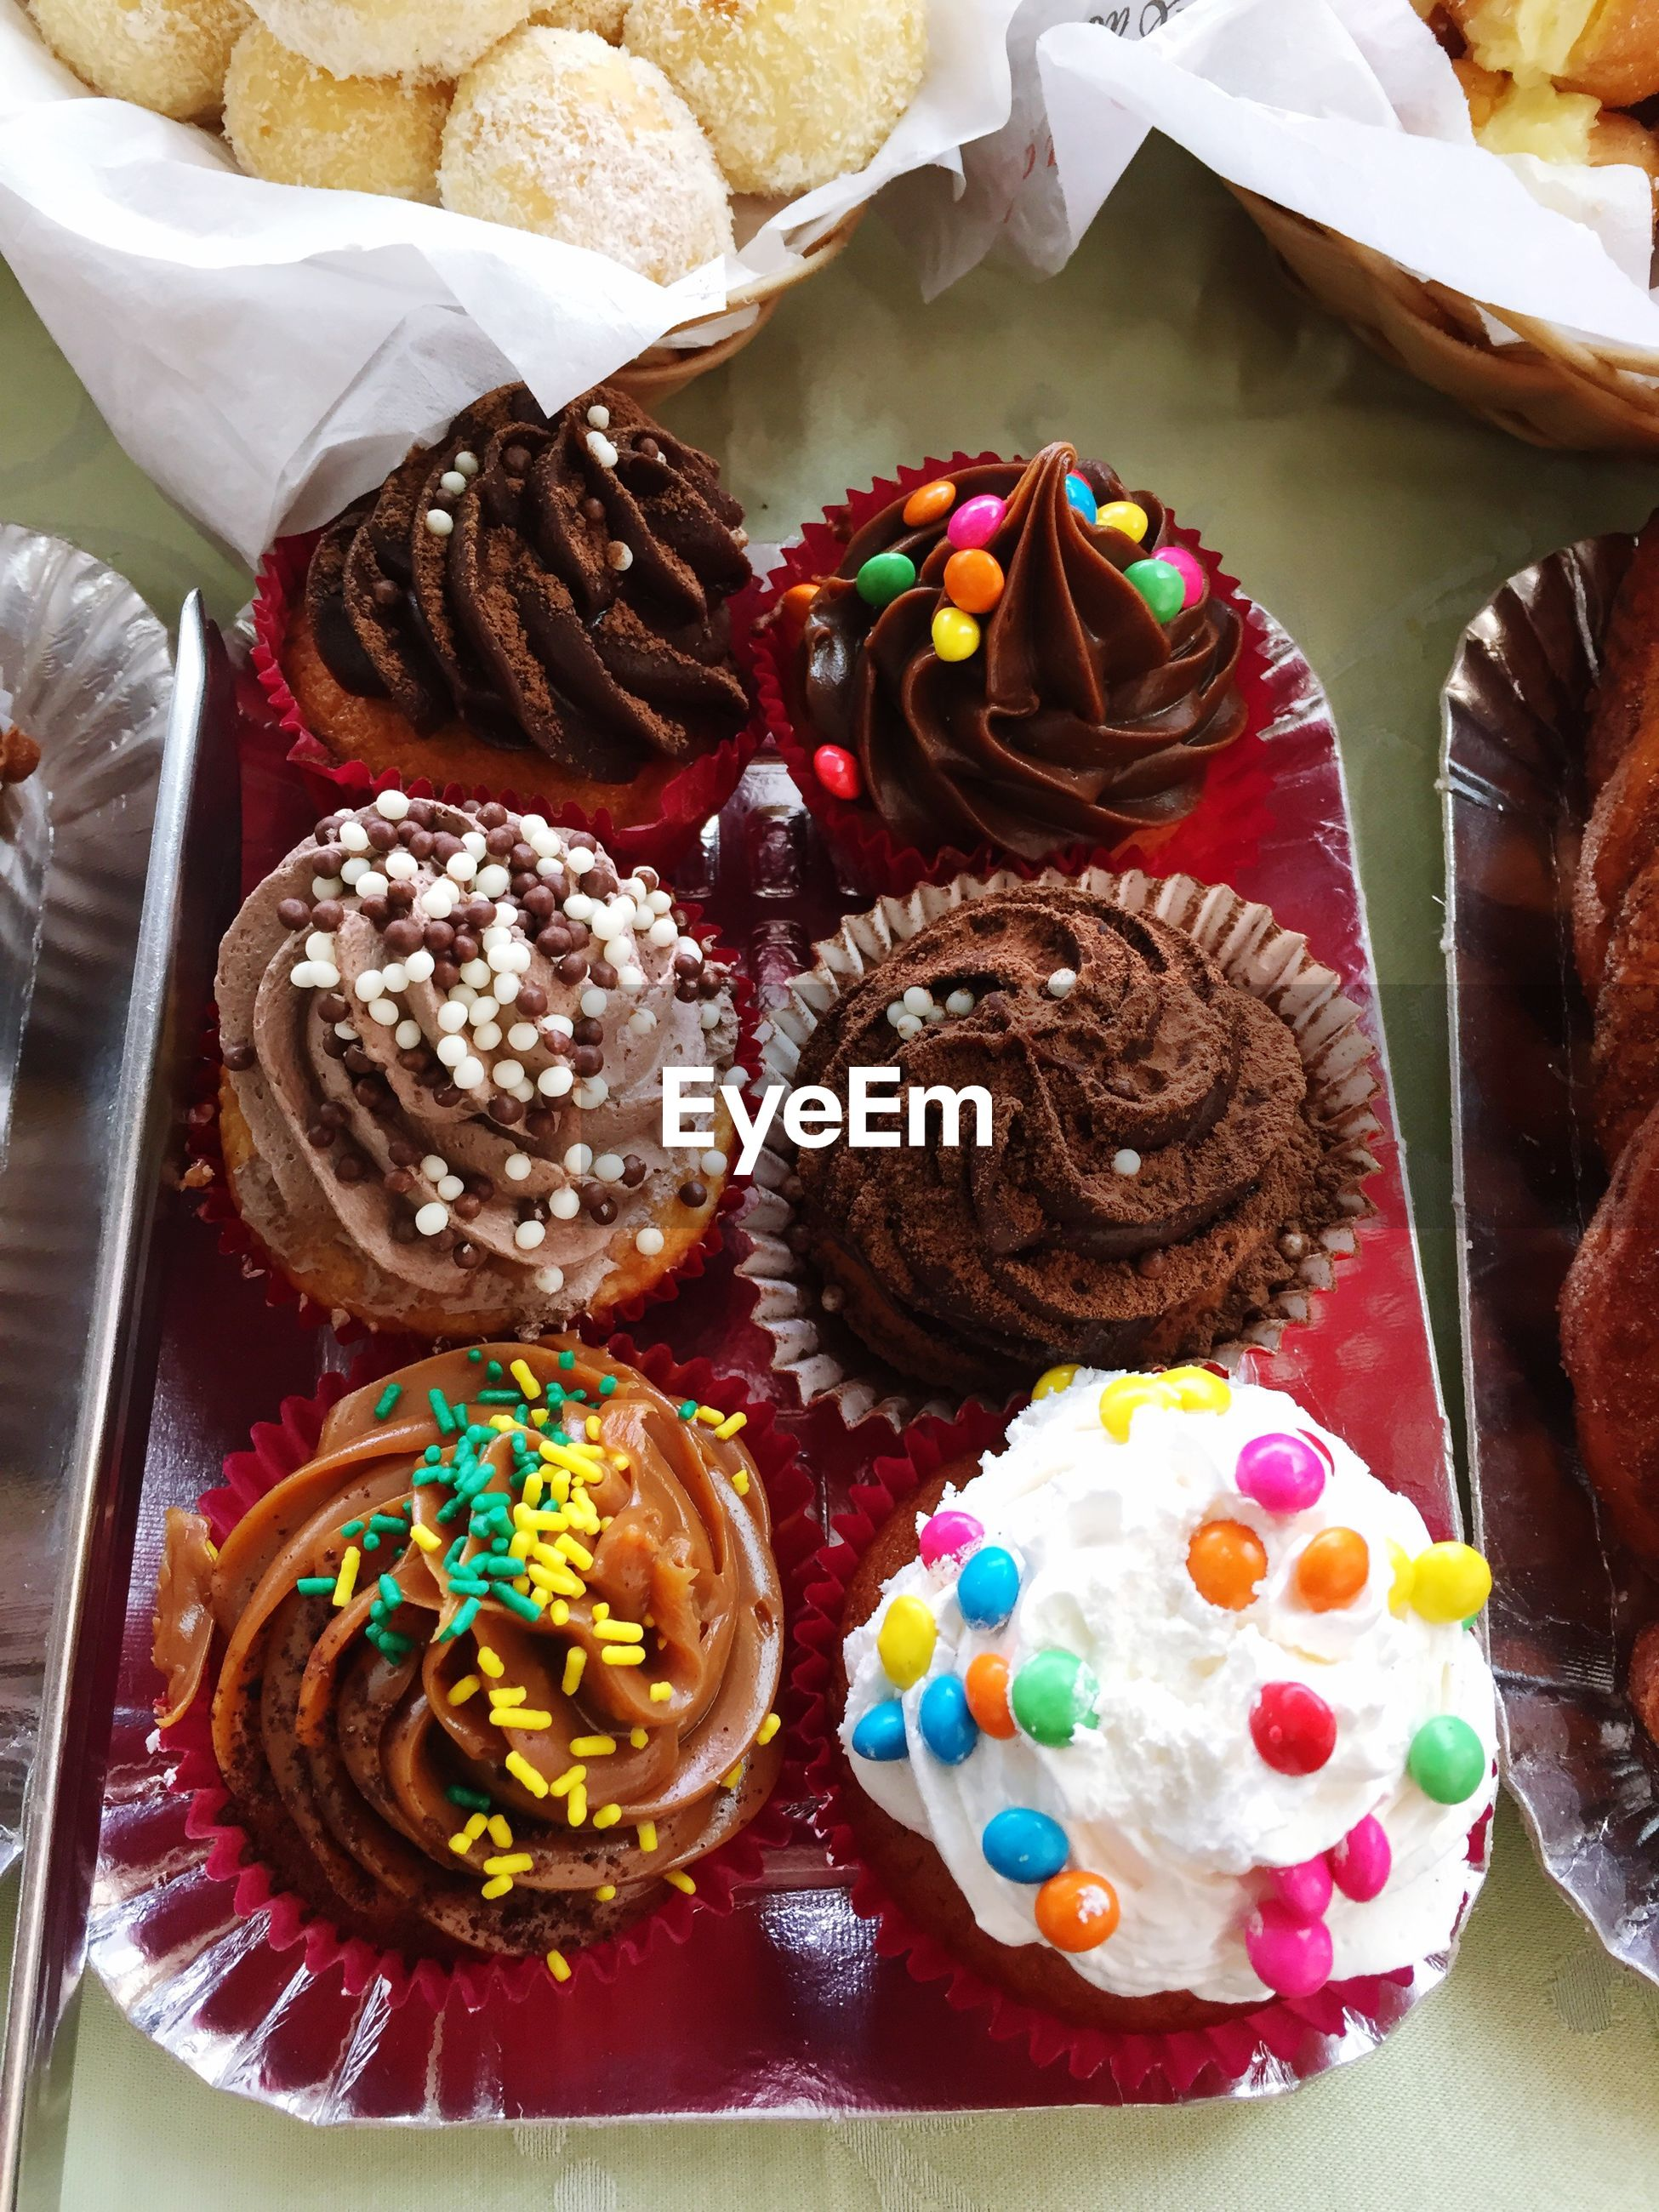 indoors, multi colored, sweet food, variation, still life, dessert, choice, large group of objects, freshness, indulgence, high angle view, unhealthy eating, food, arrangement, abundance, food and drink, ready-to-eat, cupcake, decoration, cake